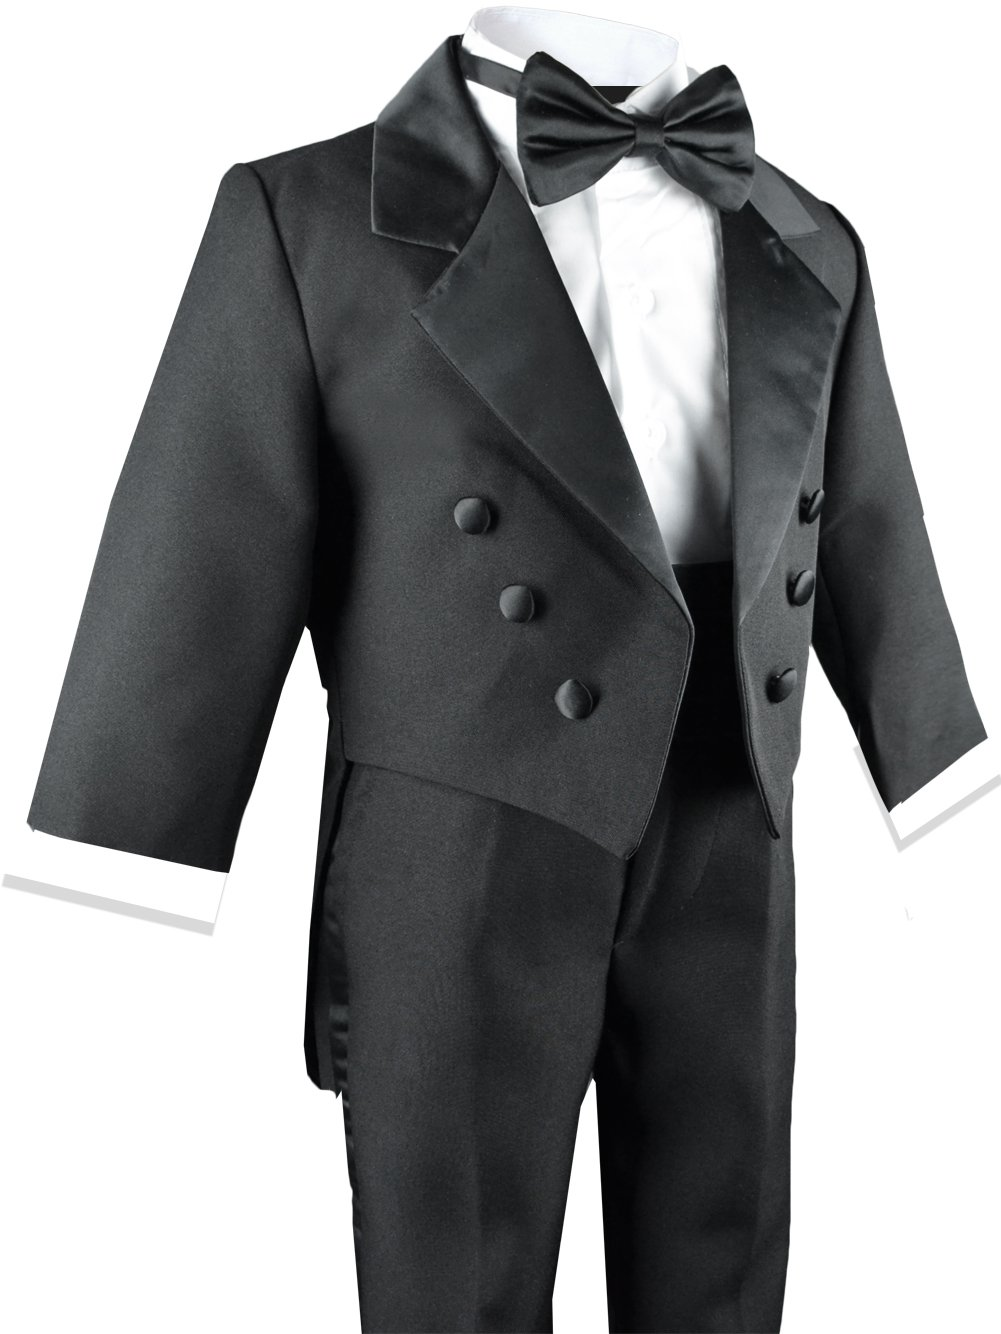 Boys Black Tuxedo with Tail Outfit Set Size 2T